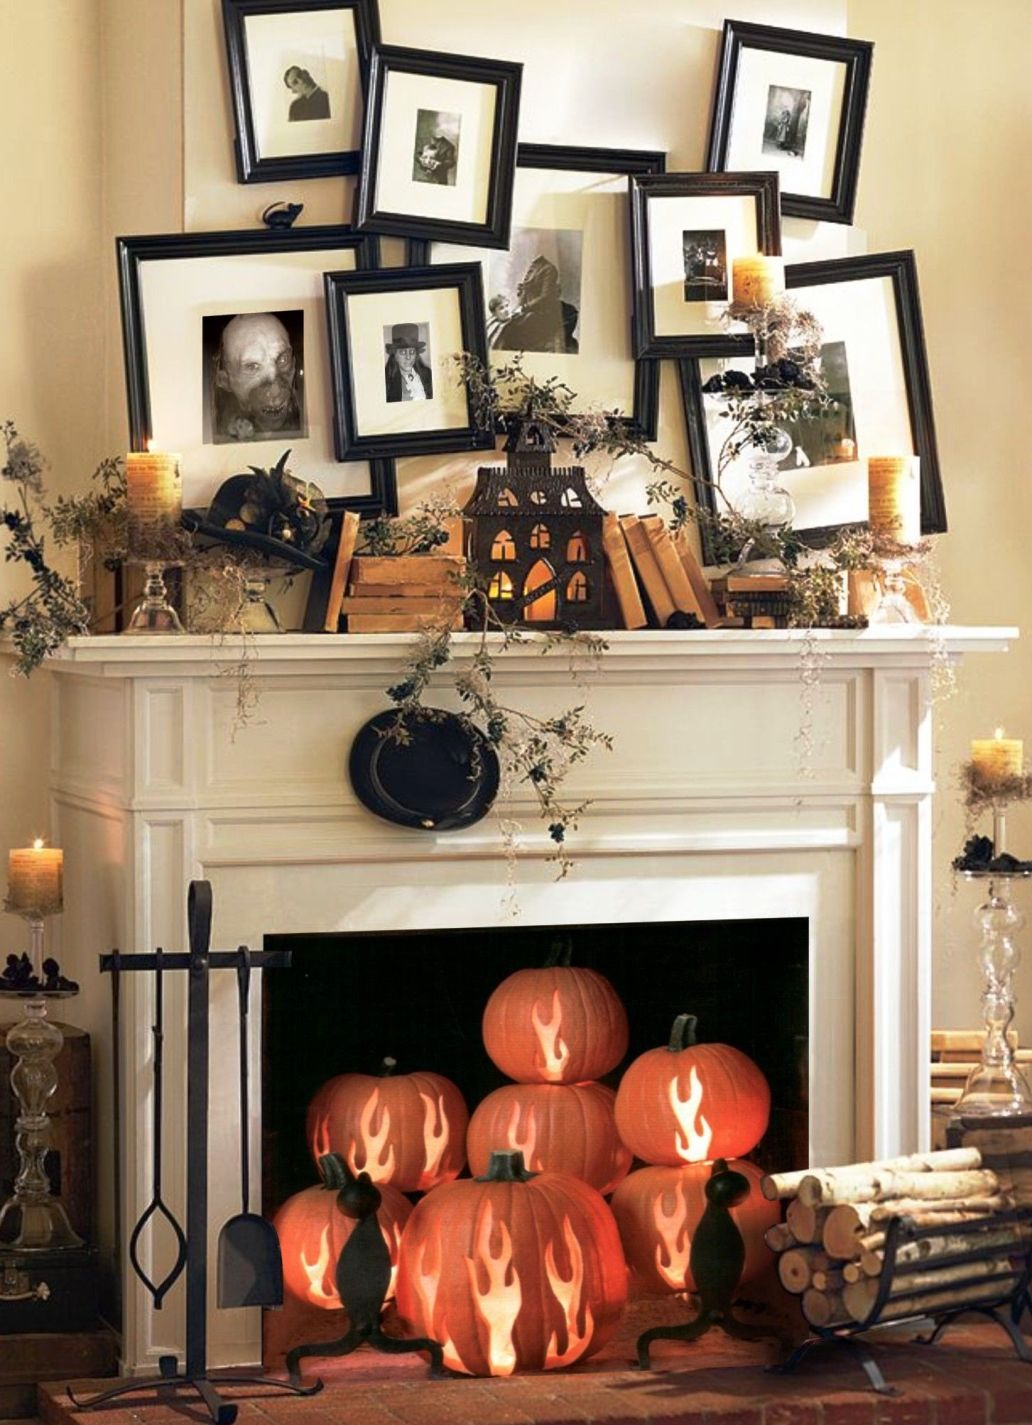 Room Decorative Items 21 Stylish Living Room Halloween Decorations Ideas